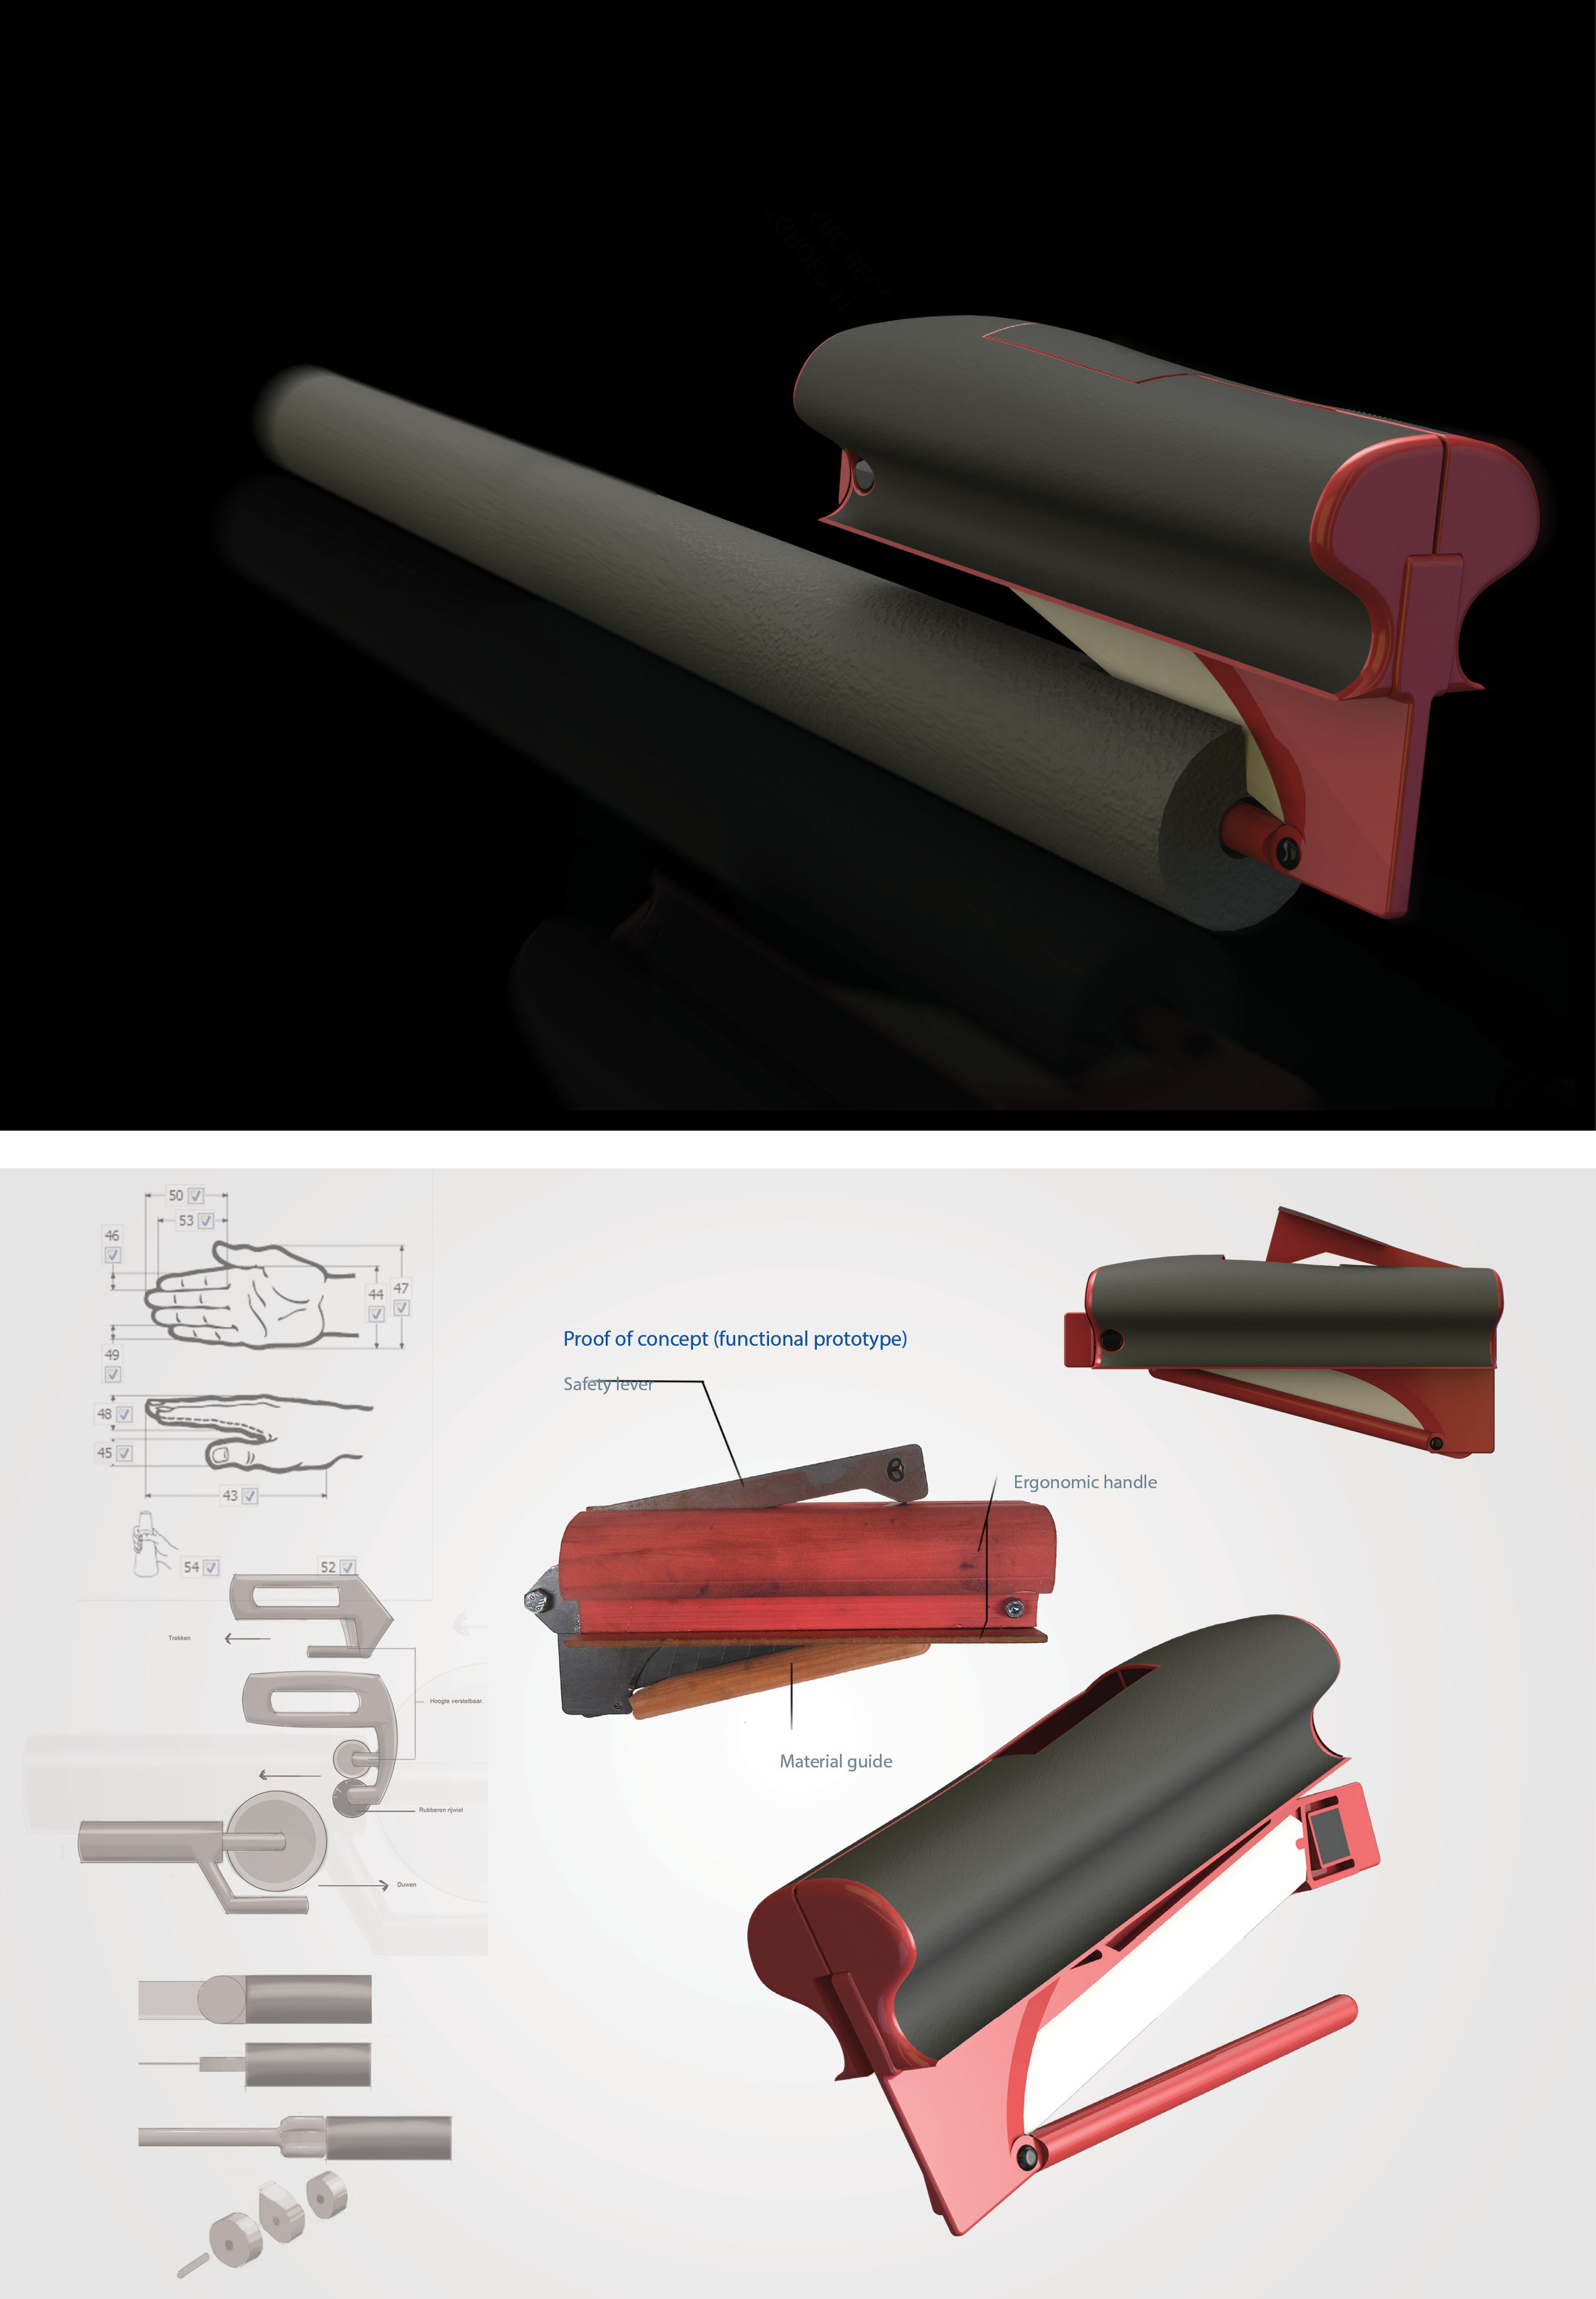 Design of a tool that aids in cutting insulation material. Published in 'Tijdschrijft voor Ergonomie 39, 2011'.